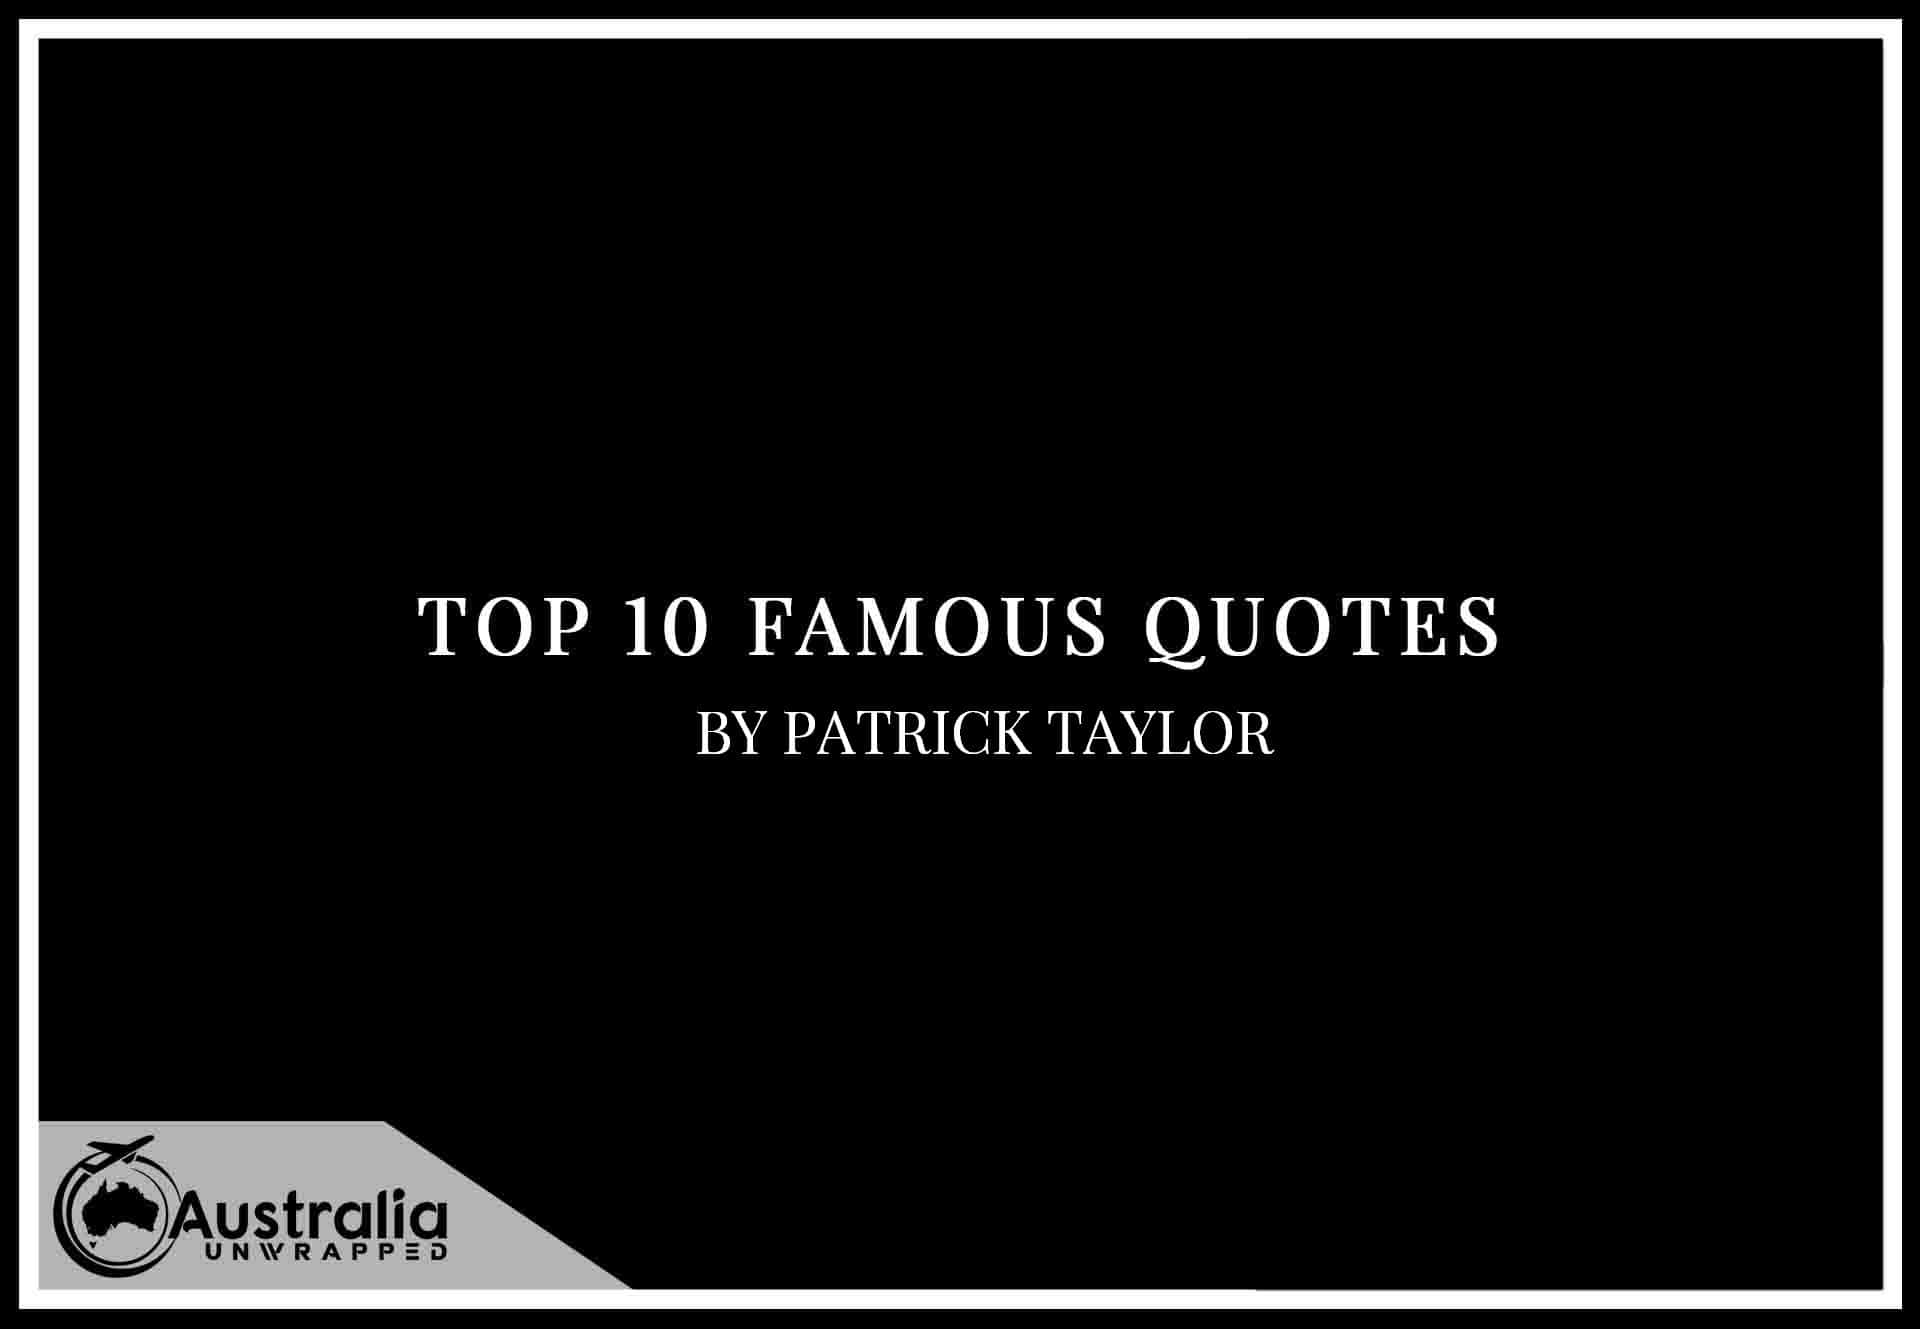 Top 10 Famous Quotes by Author Patrick Taylor